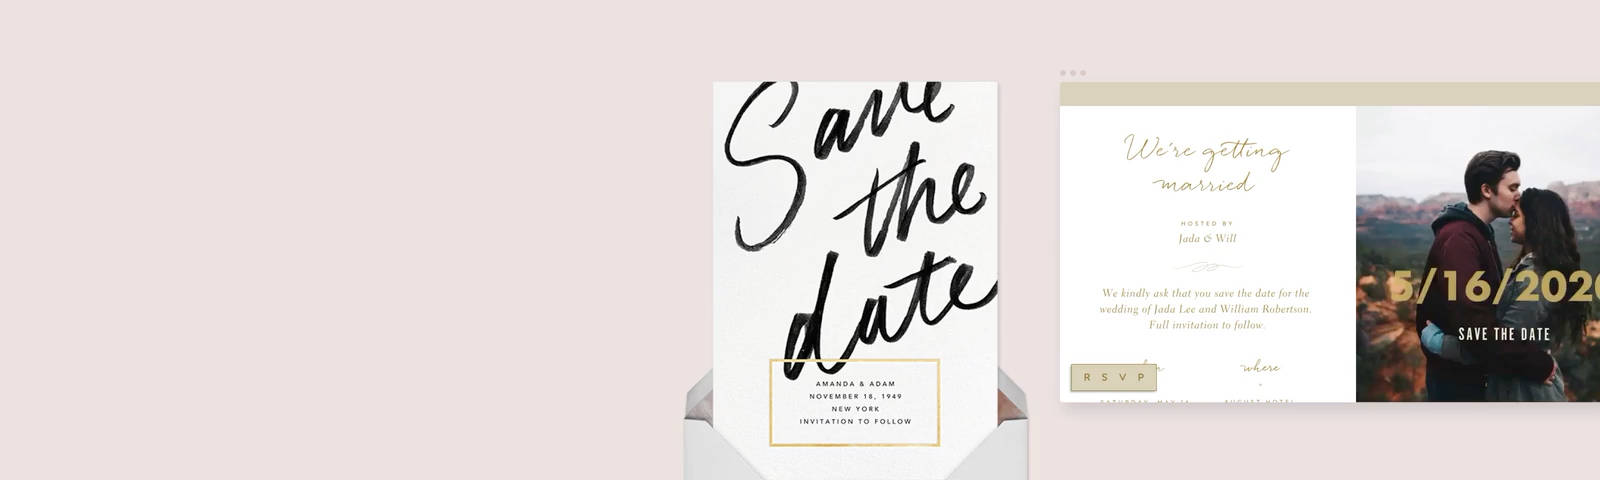 Save The Dates Send Online Instantly